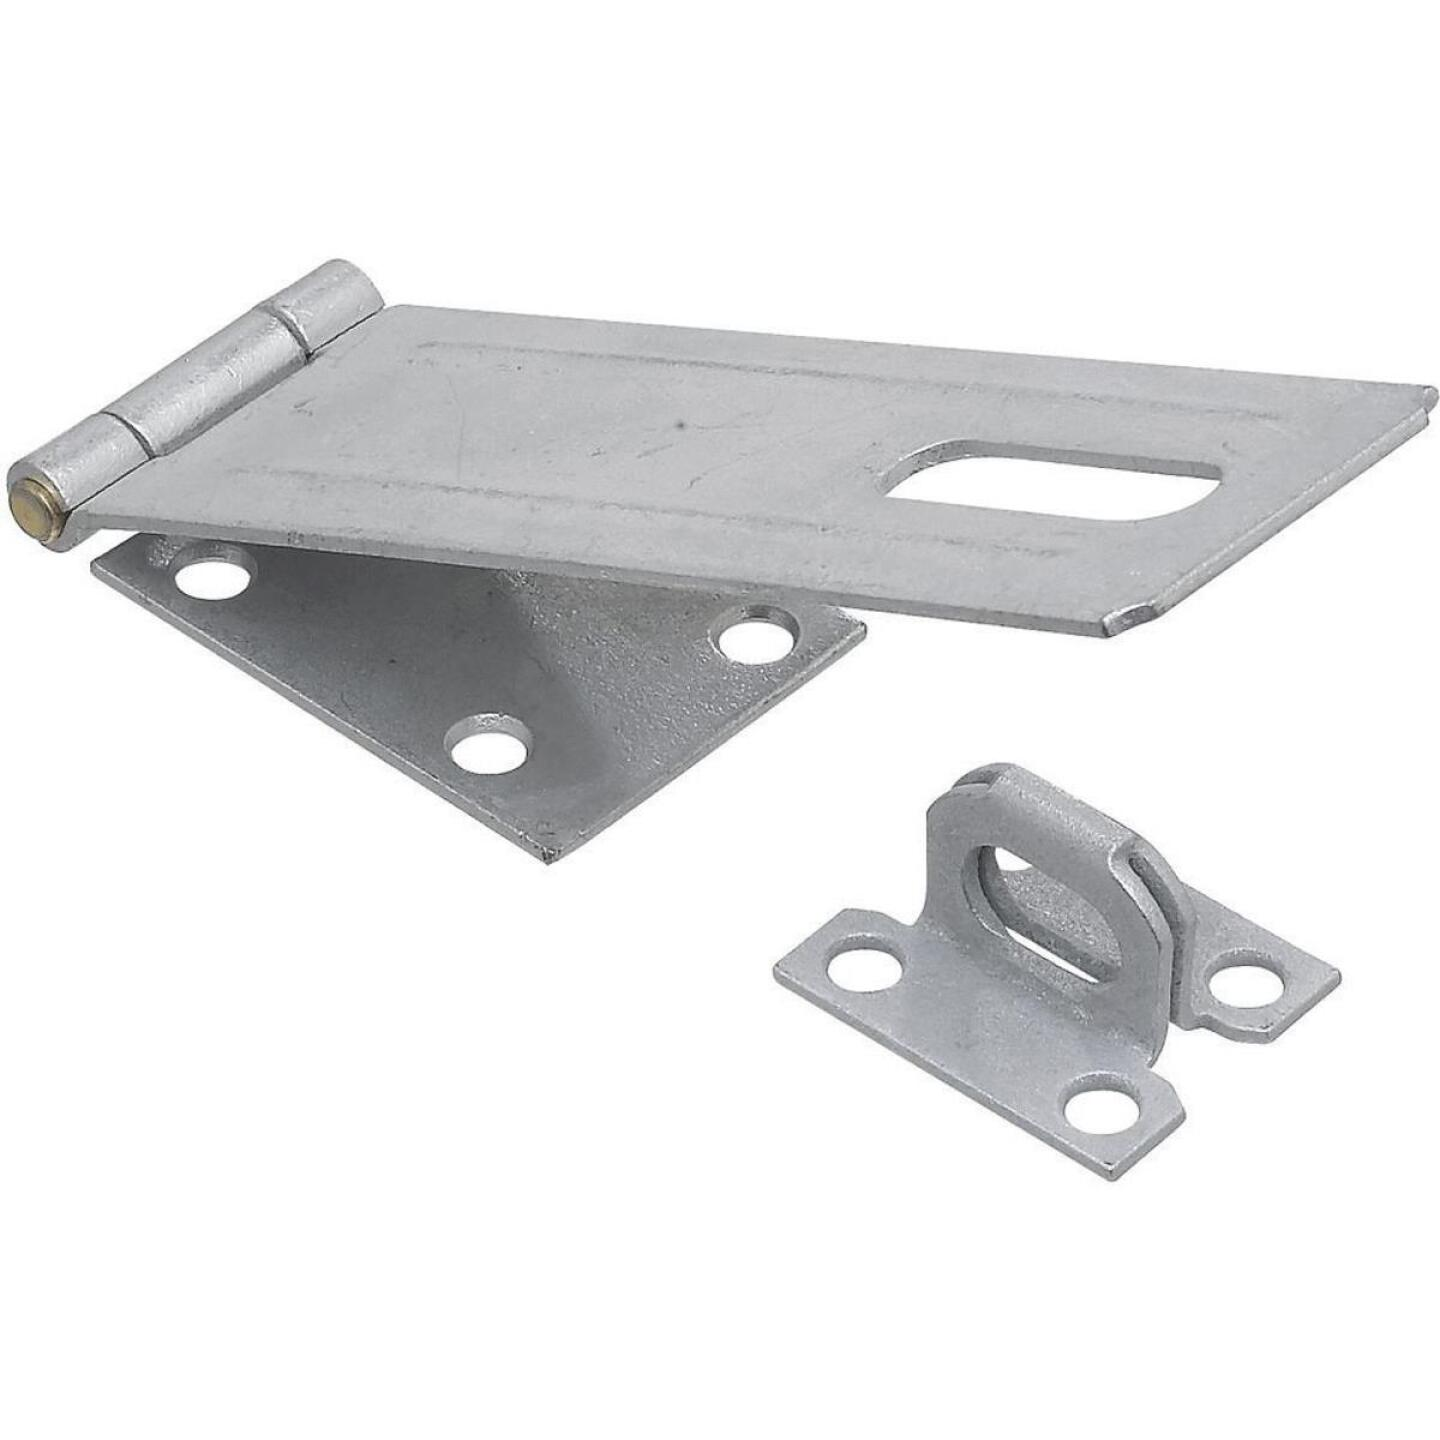 National 6 In. Galvanized Non-Swivel Safety Hasp Image 1